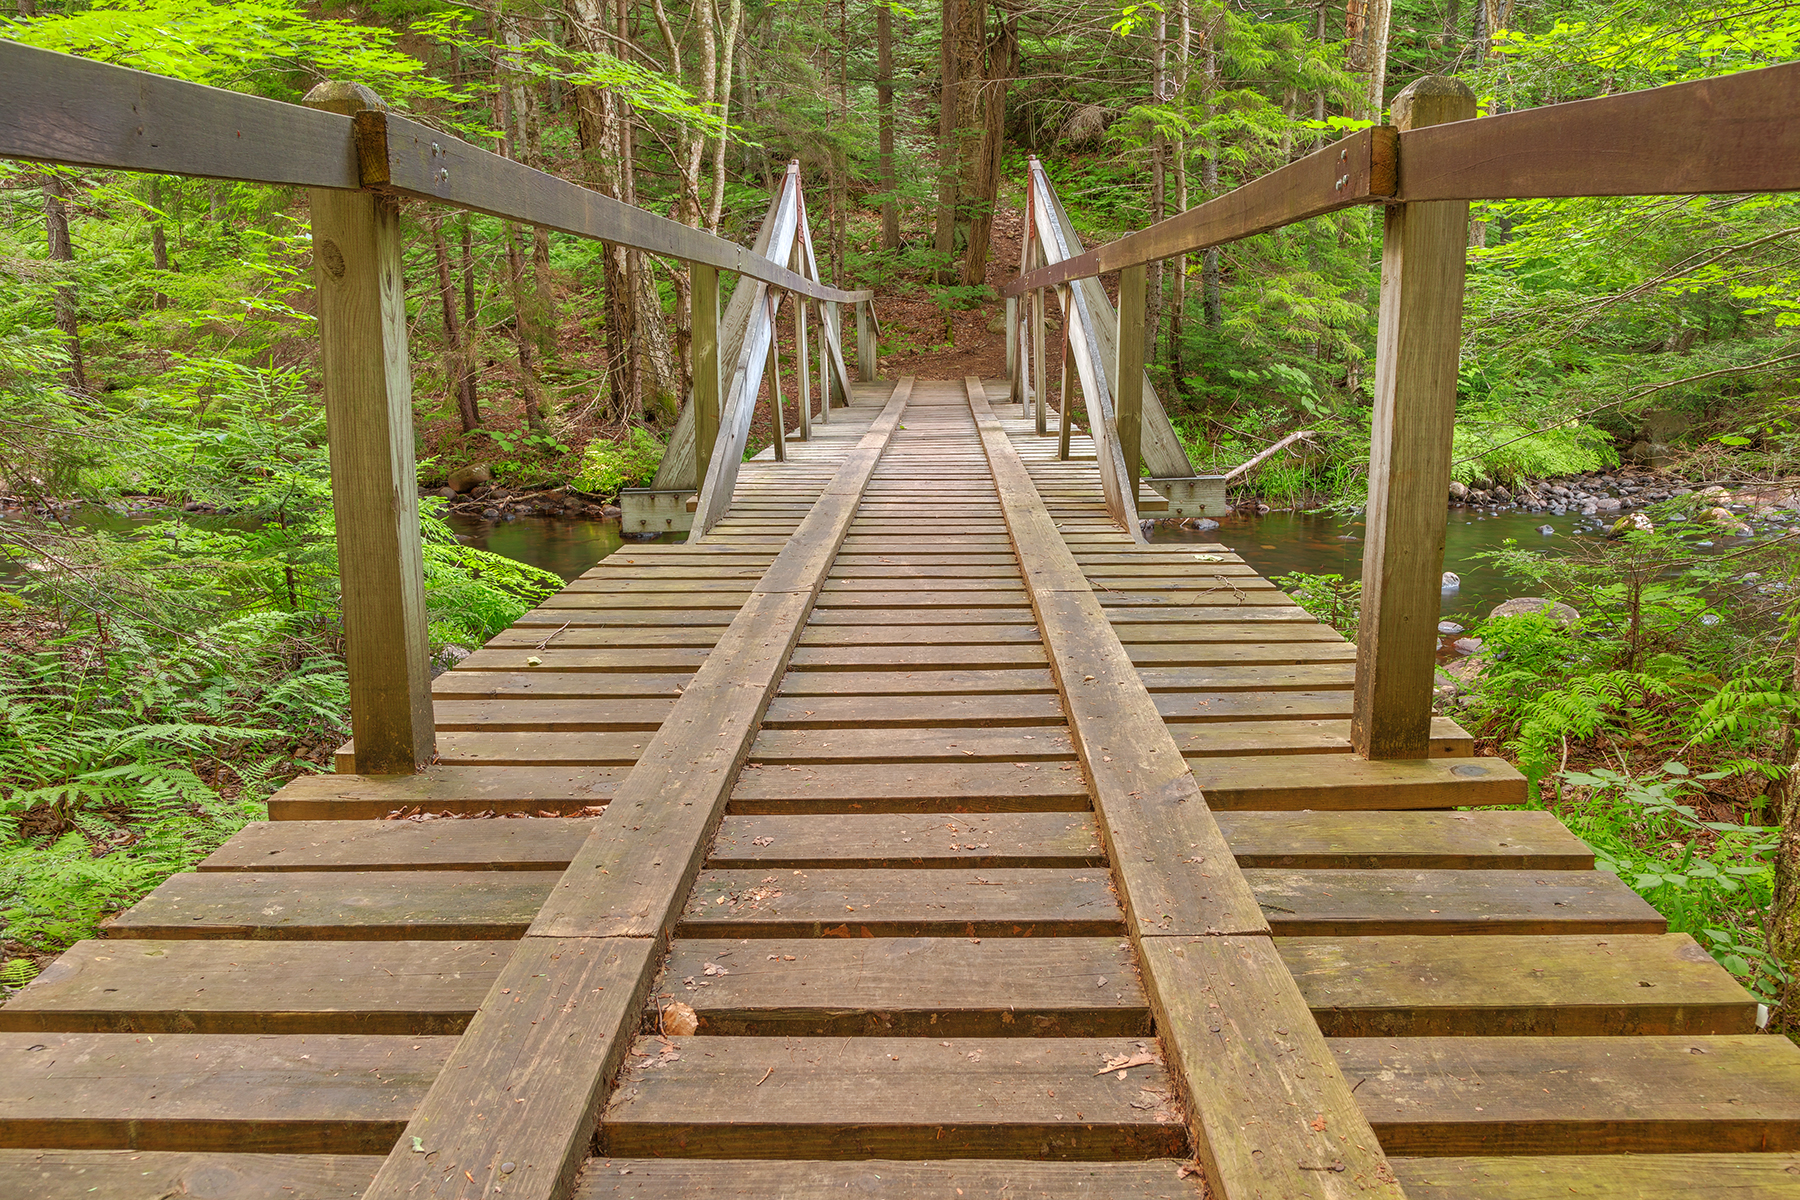 Forest track bridge - hdr photo